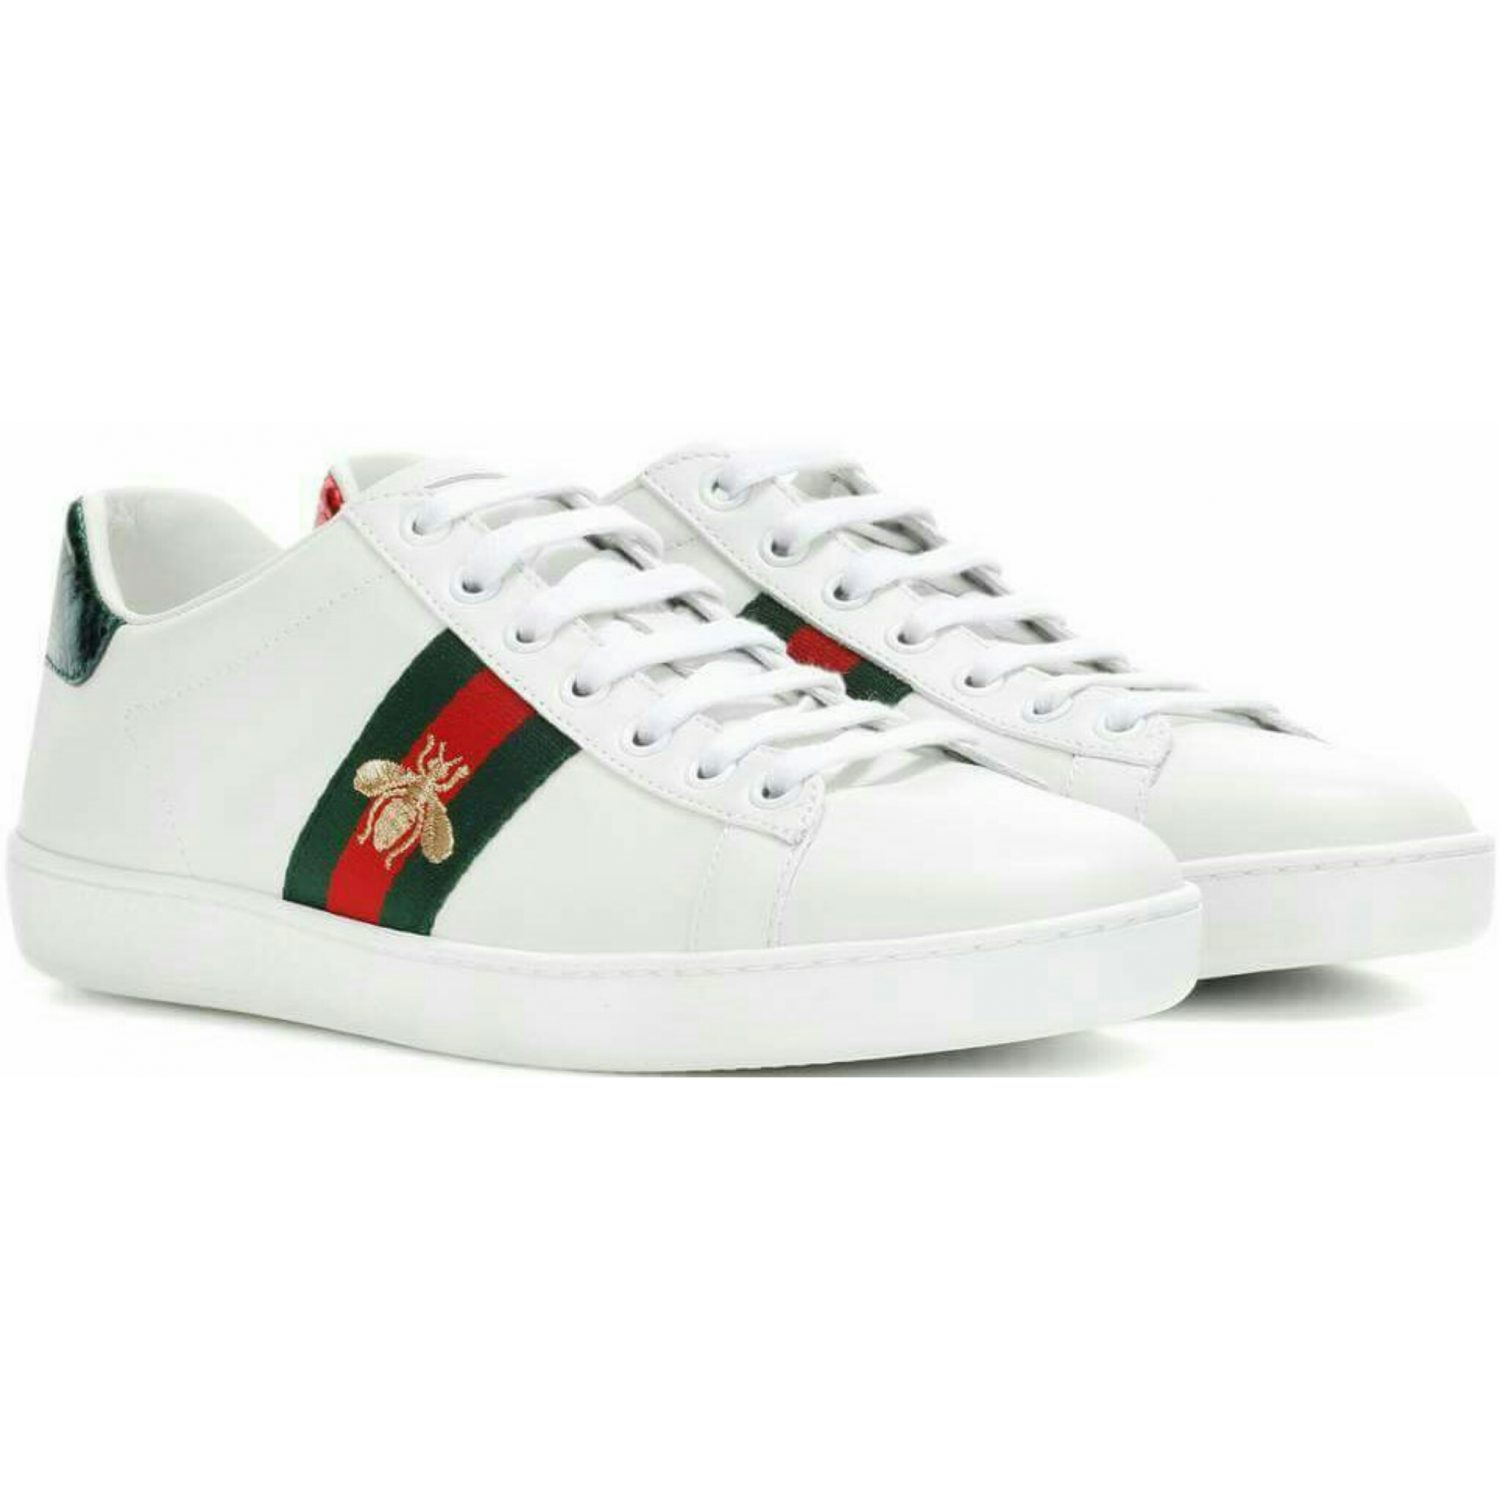 Gucci Shoes Ace Bee Embroidered Pakistan Cod Elmstreet Pk